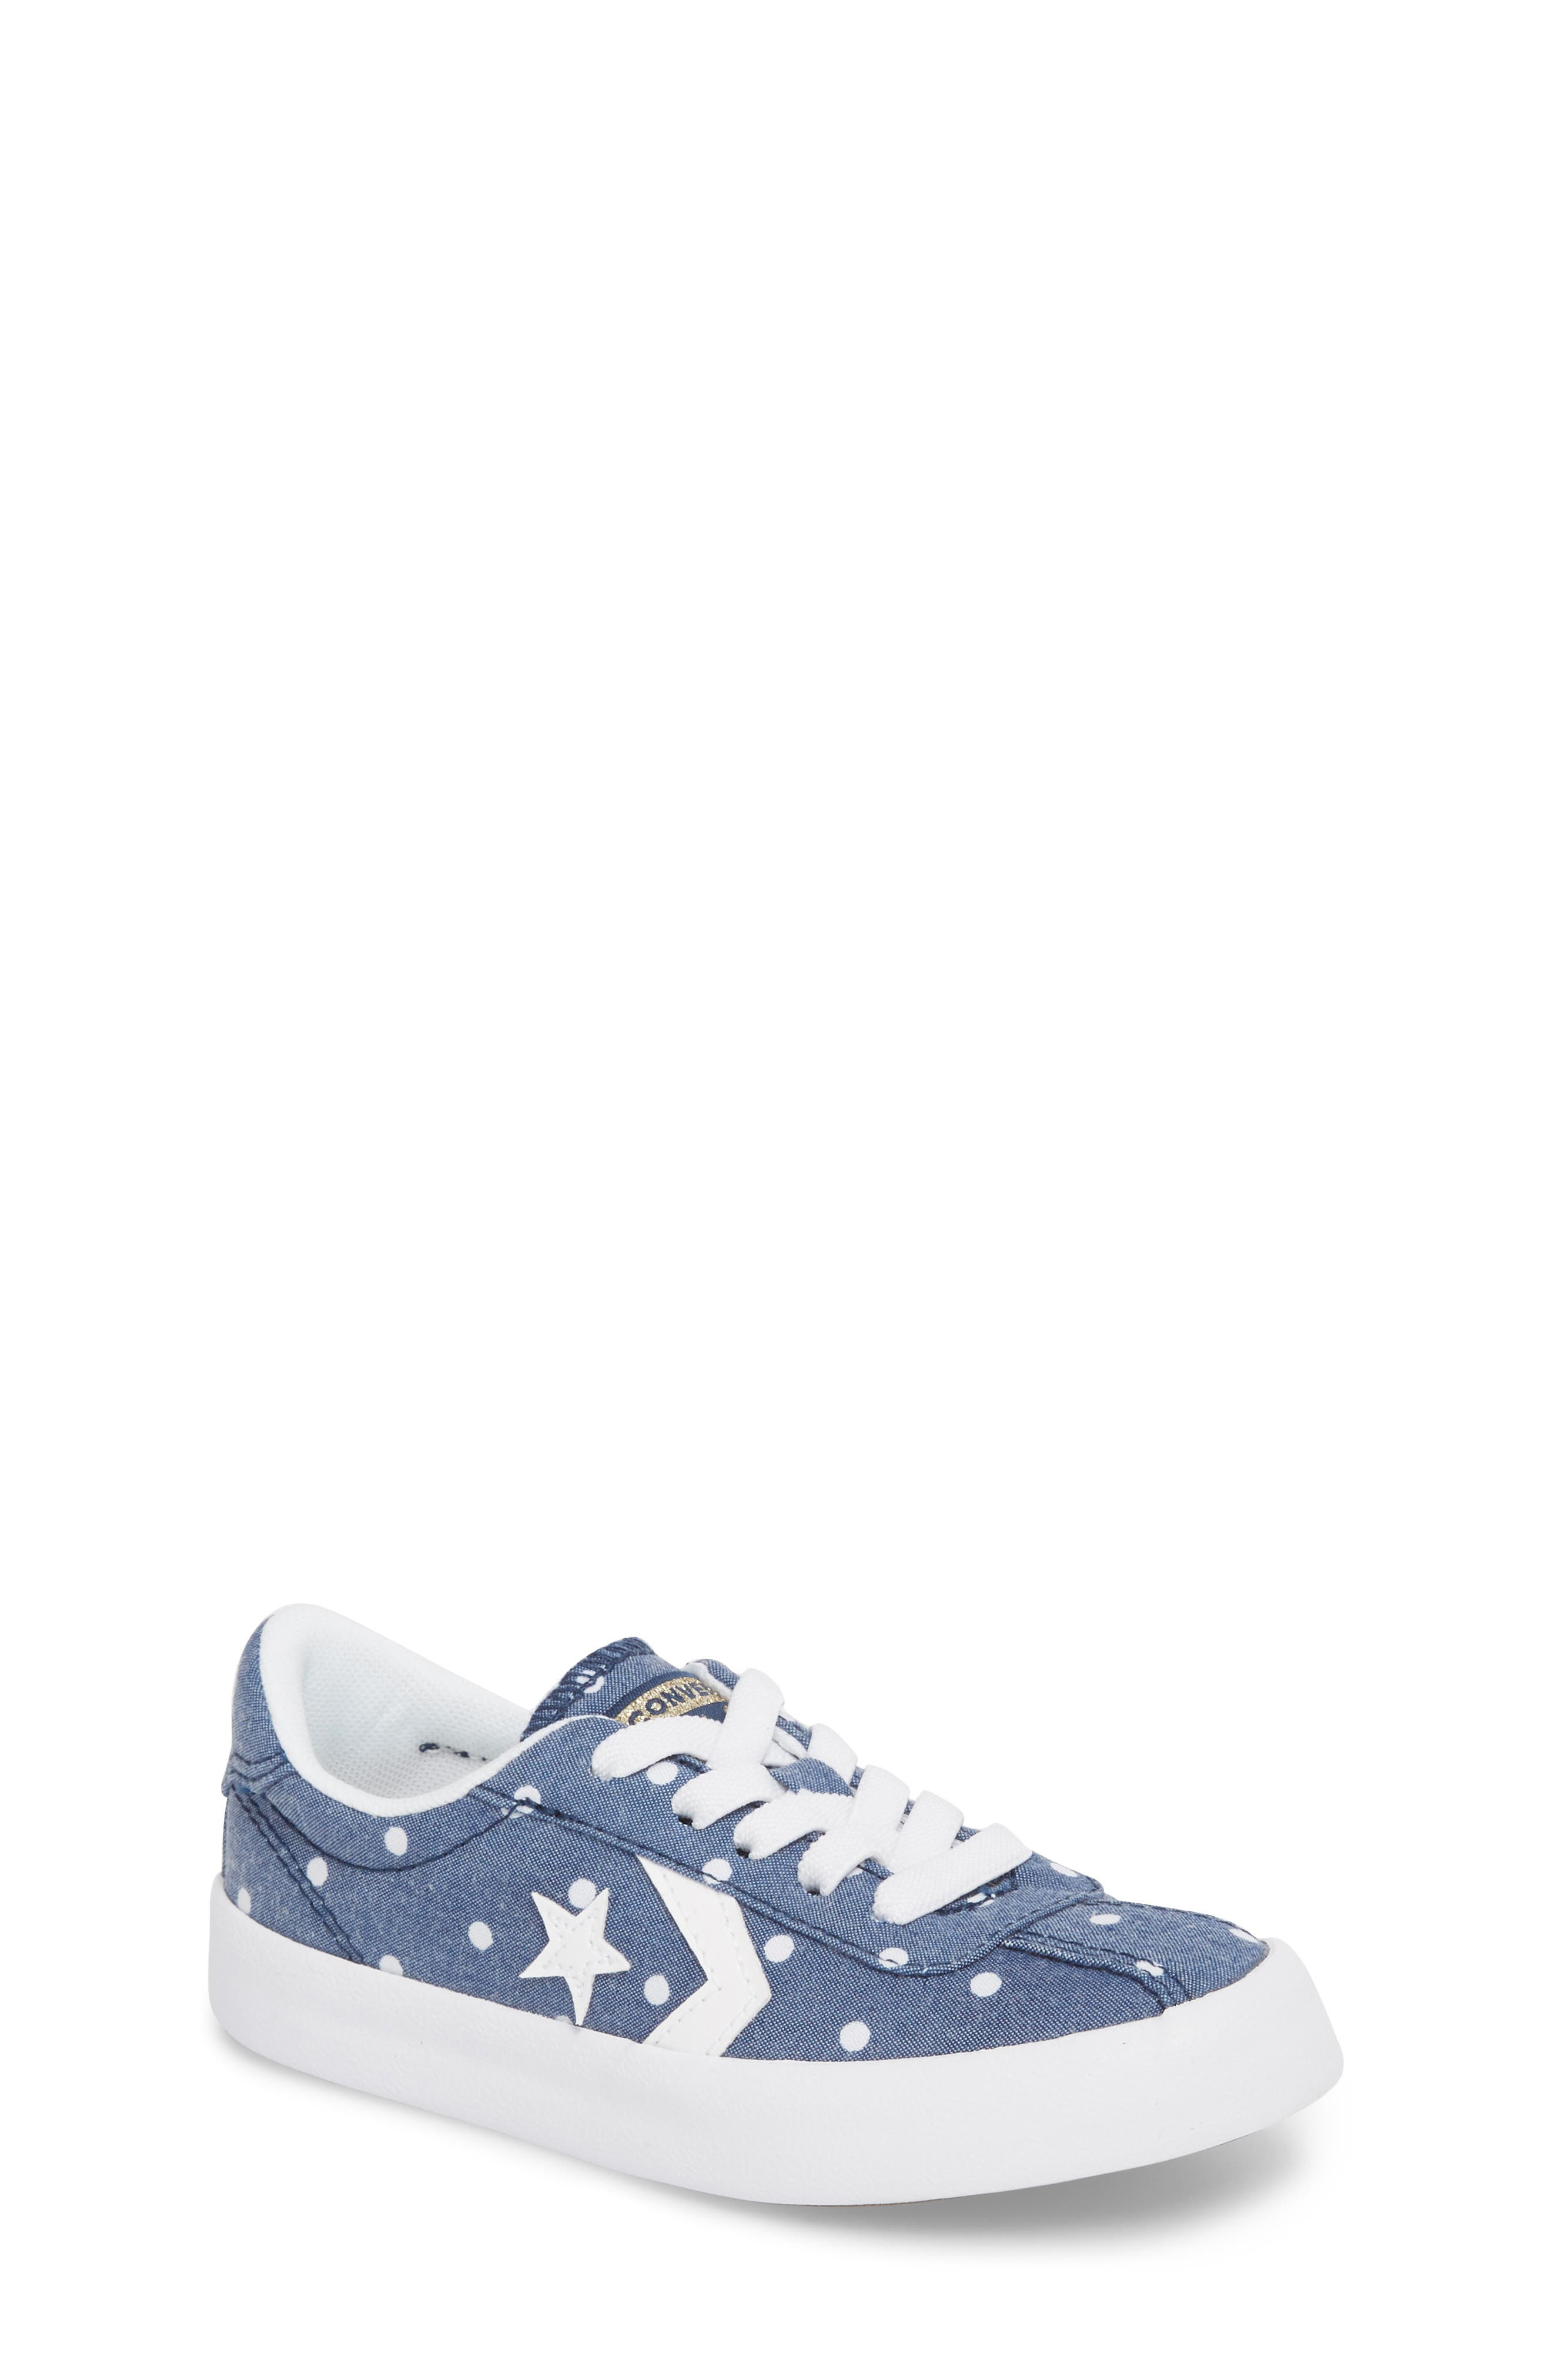 Breakpoint Polka Dot Sneaker,                         Main,                         color, Navy